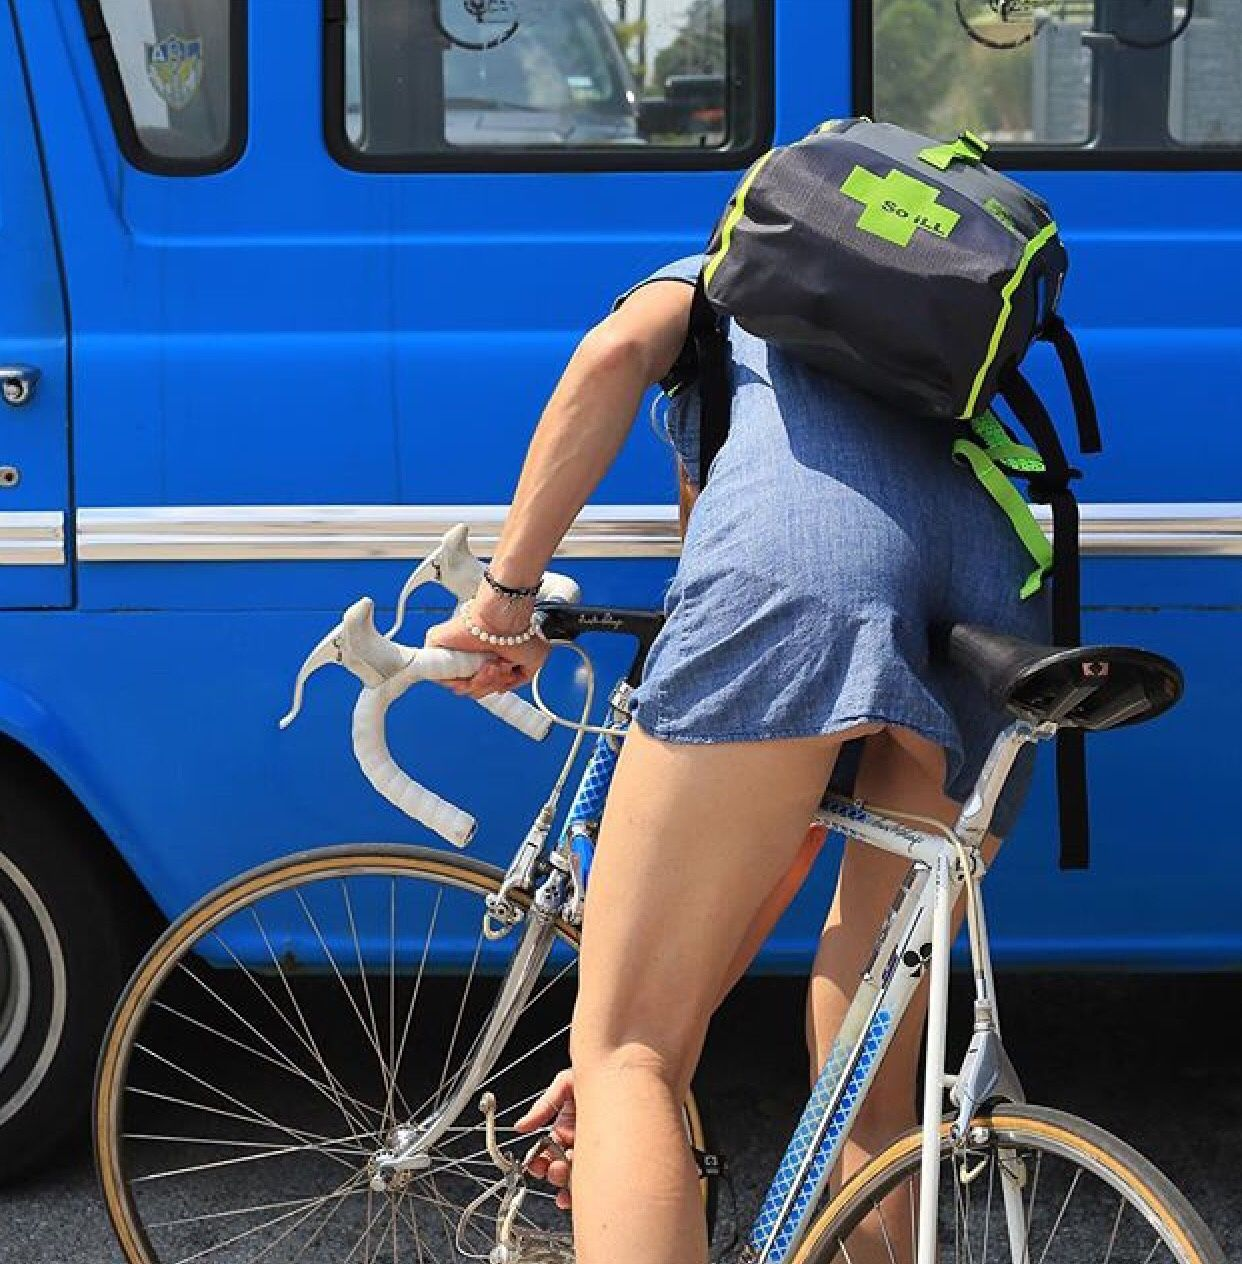 Curves And Lines Women And Bikes Sexy Bike Pinterest